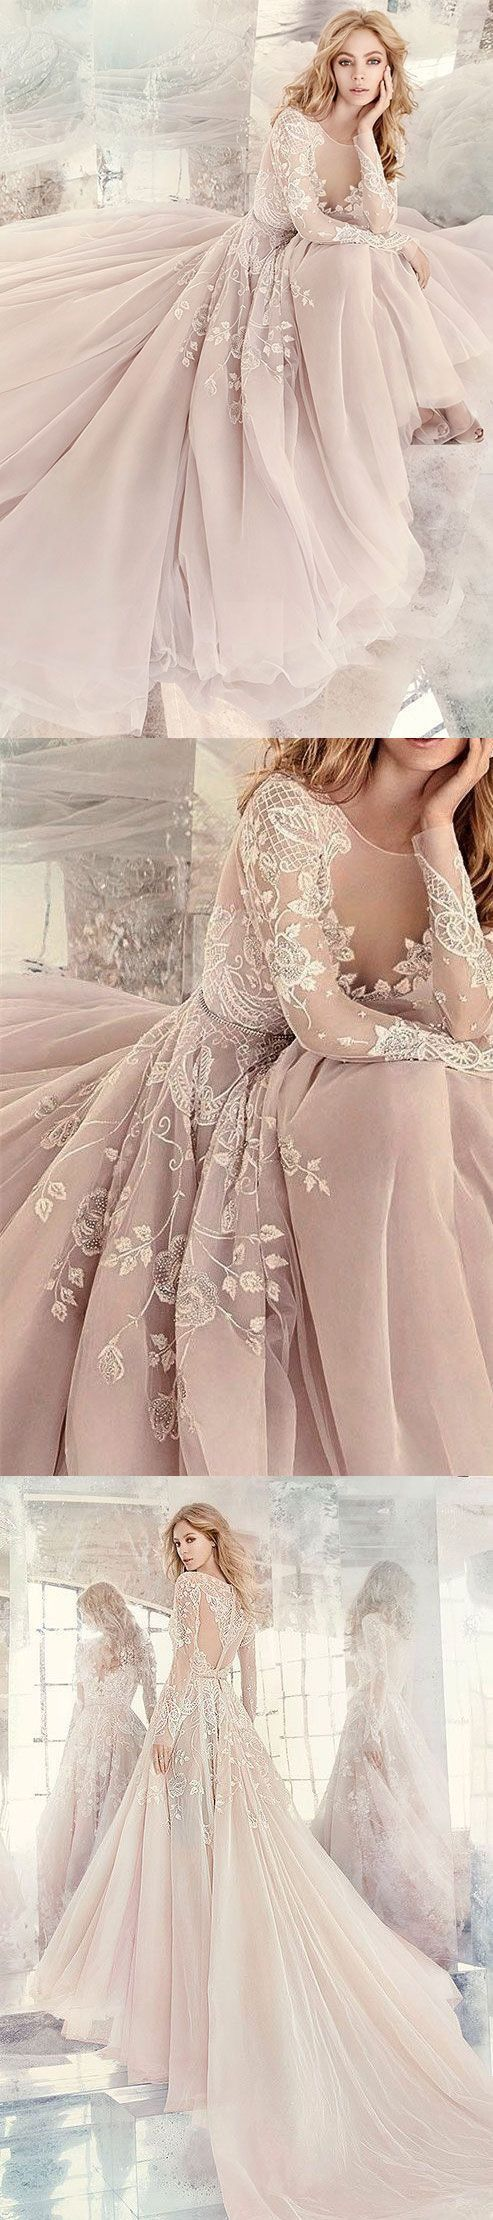 Charming Blush Pink Prom Dress,Embroidery Prom Dress, Long Sleeves Prom Dress,See Through Evening Dress